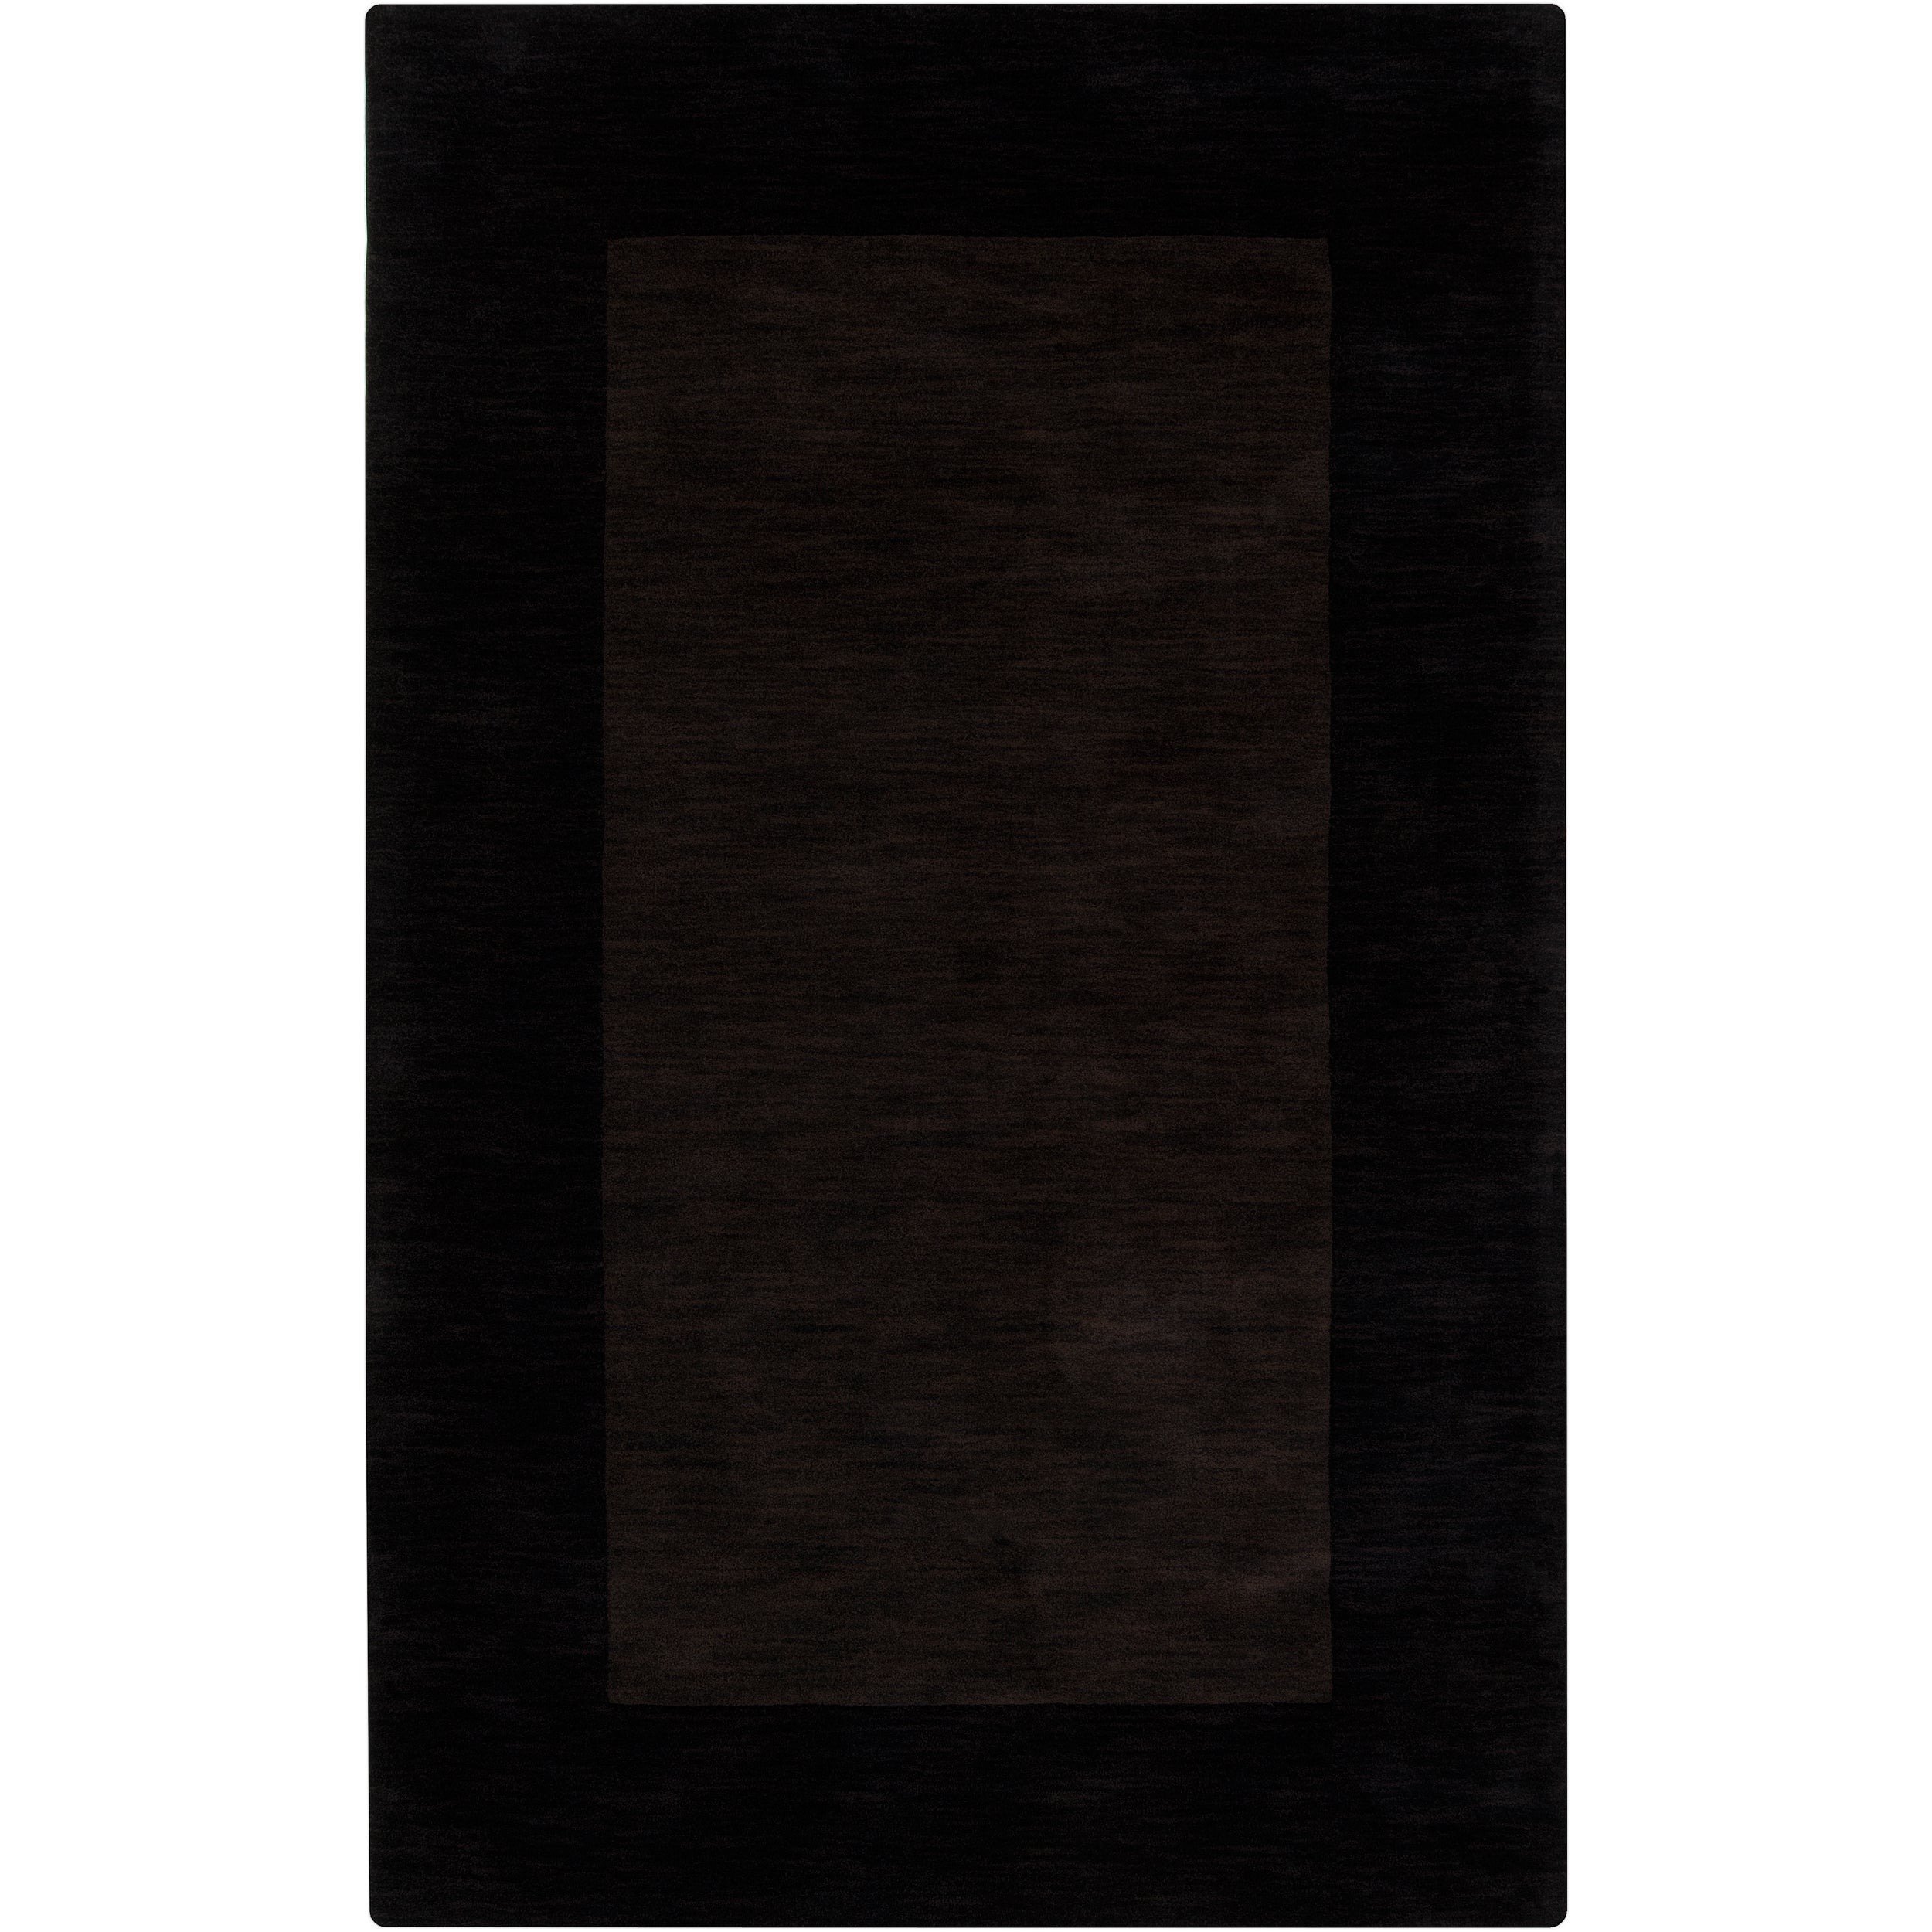 Hand-crafted Dark Brown Tone-On-Tone Bordered Mantra Wool Rug (7'6 x 9'6)